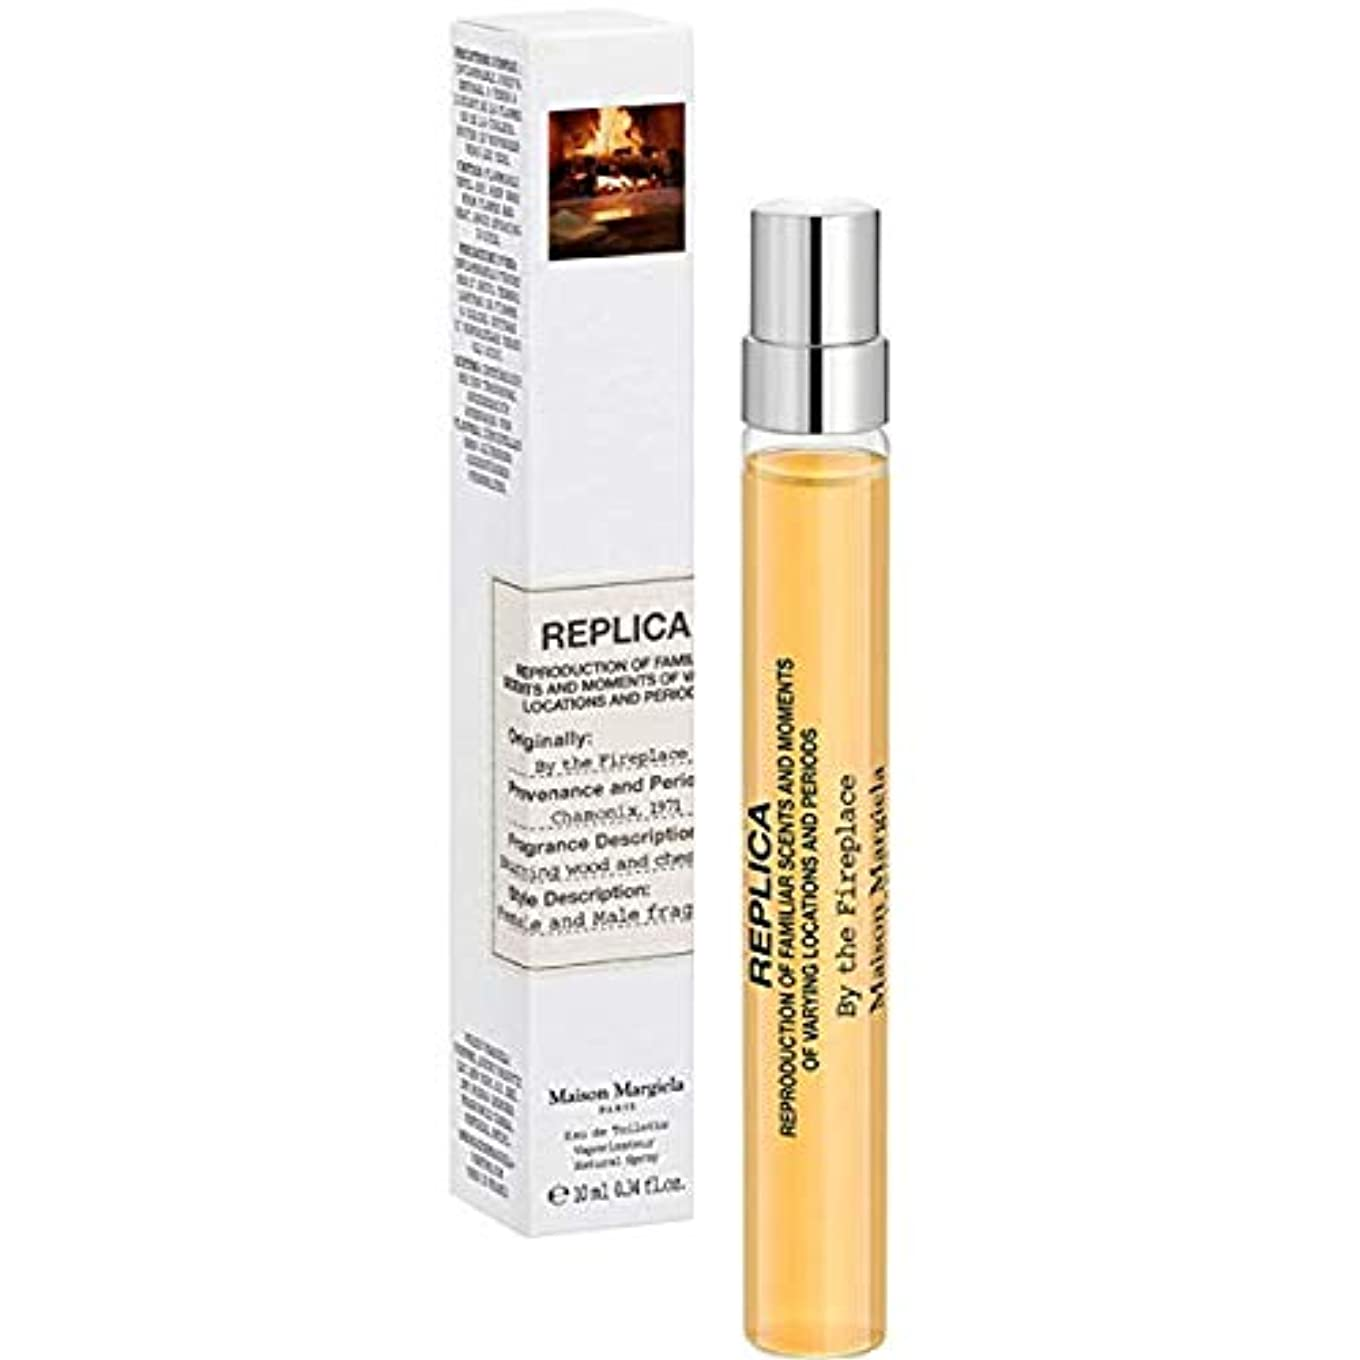 信じる批判的に炎上Maison Martin Margiela (メゾンマーチンマルジエラ)'REPLICA' By The Fireplace 0.34 oz/ 10 mL Eau de Toilette Travel Spray[海外直送品...